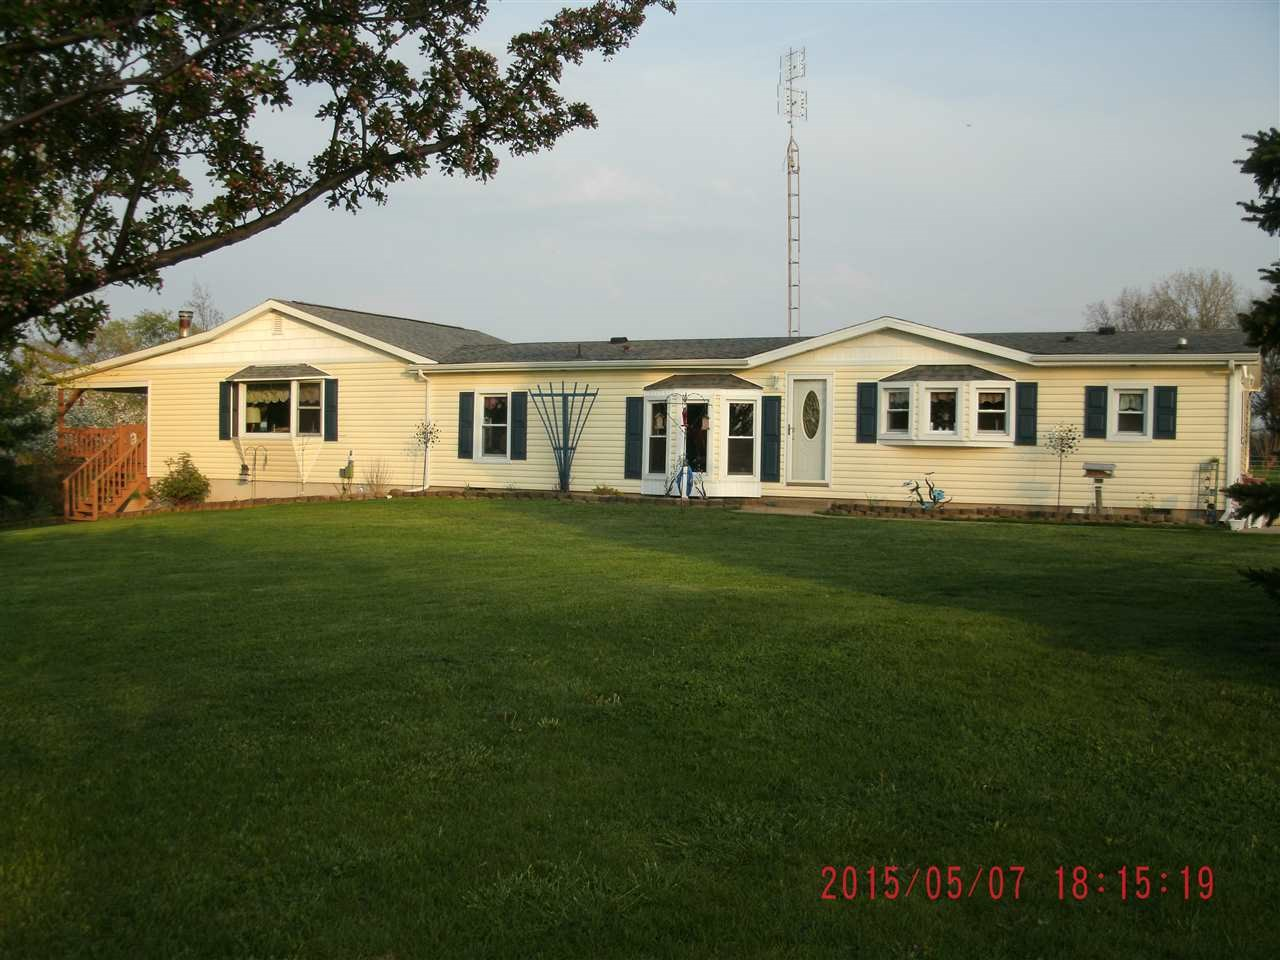 4630 N 900 W, Orland, IN 46776